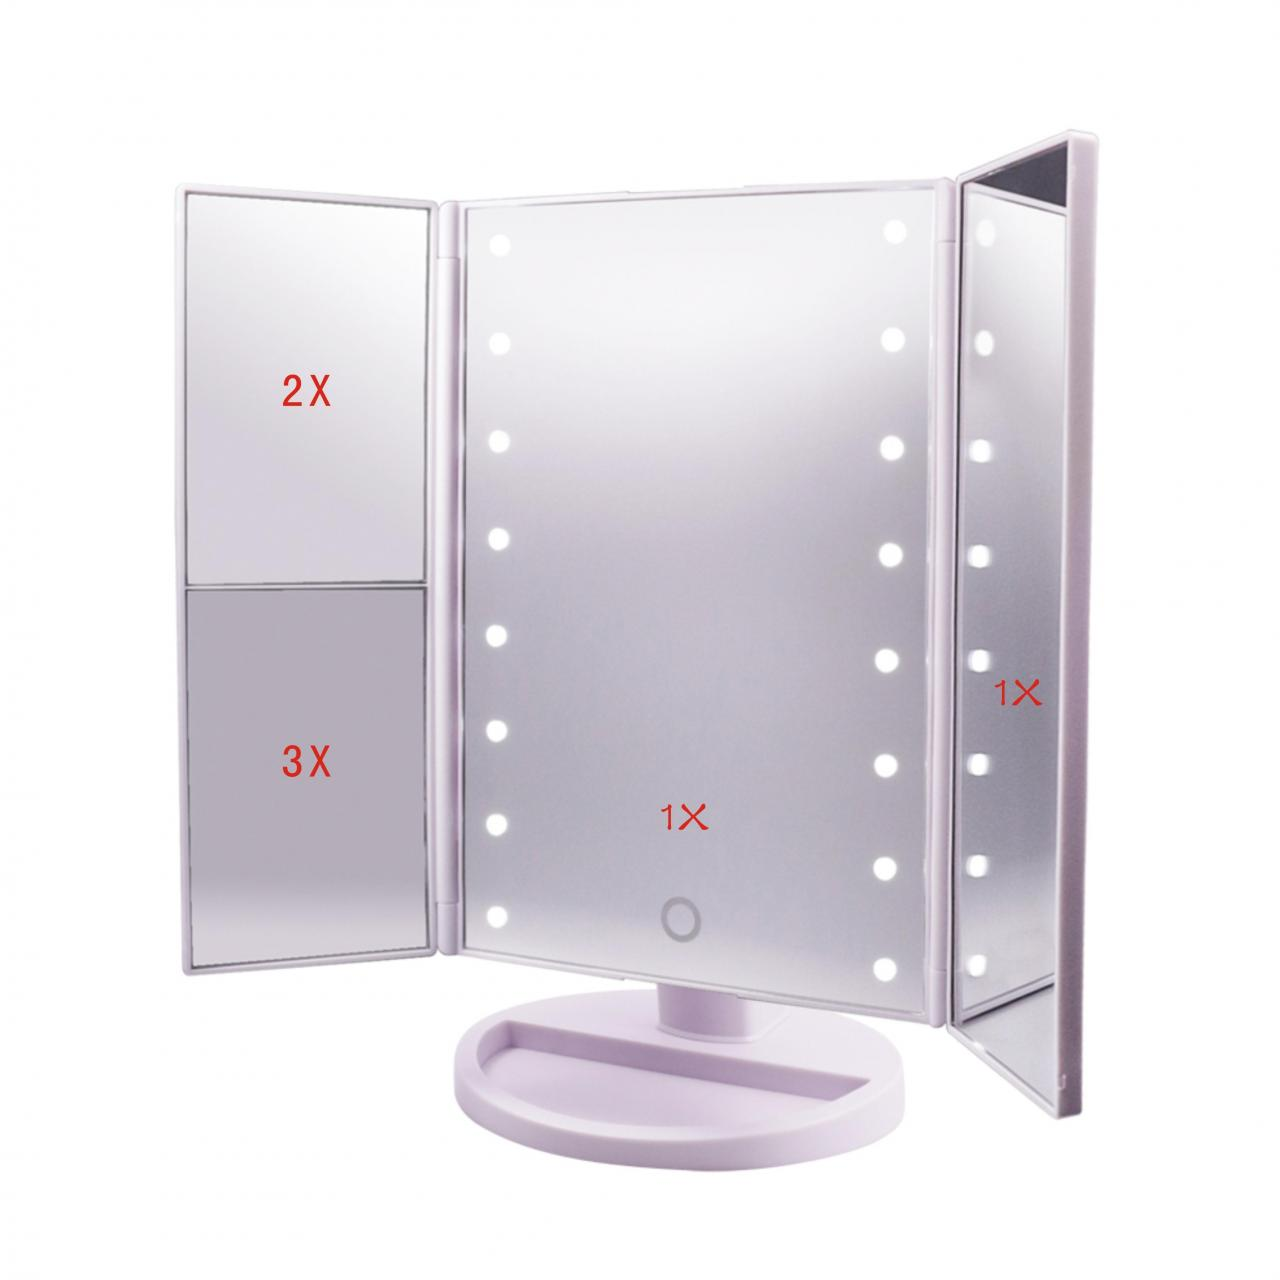 Cheap Tri-Fold Illuminated cosmetic mirror rectangular vanity mirror with lights,3X/2X/1X Magnification for sale